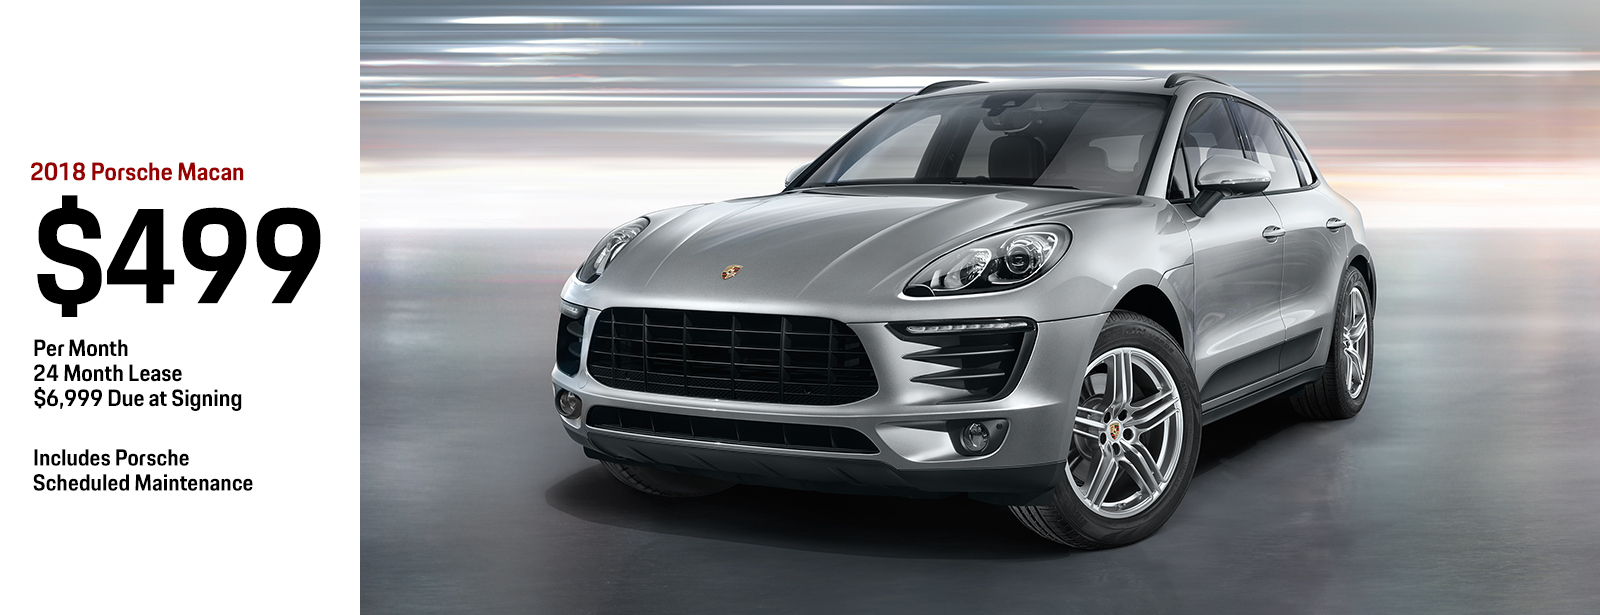 2018 Porsche Macan Low Payment Lease Special in Chandler, AZ